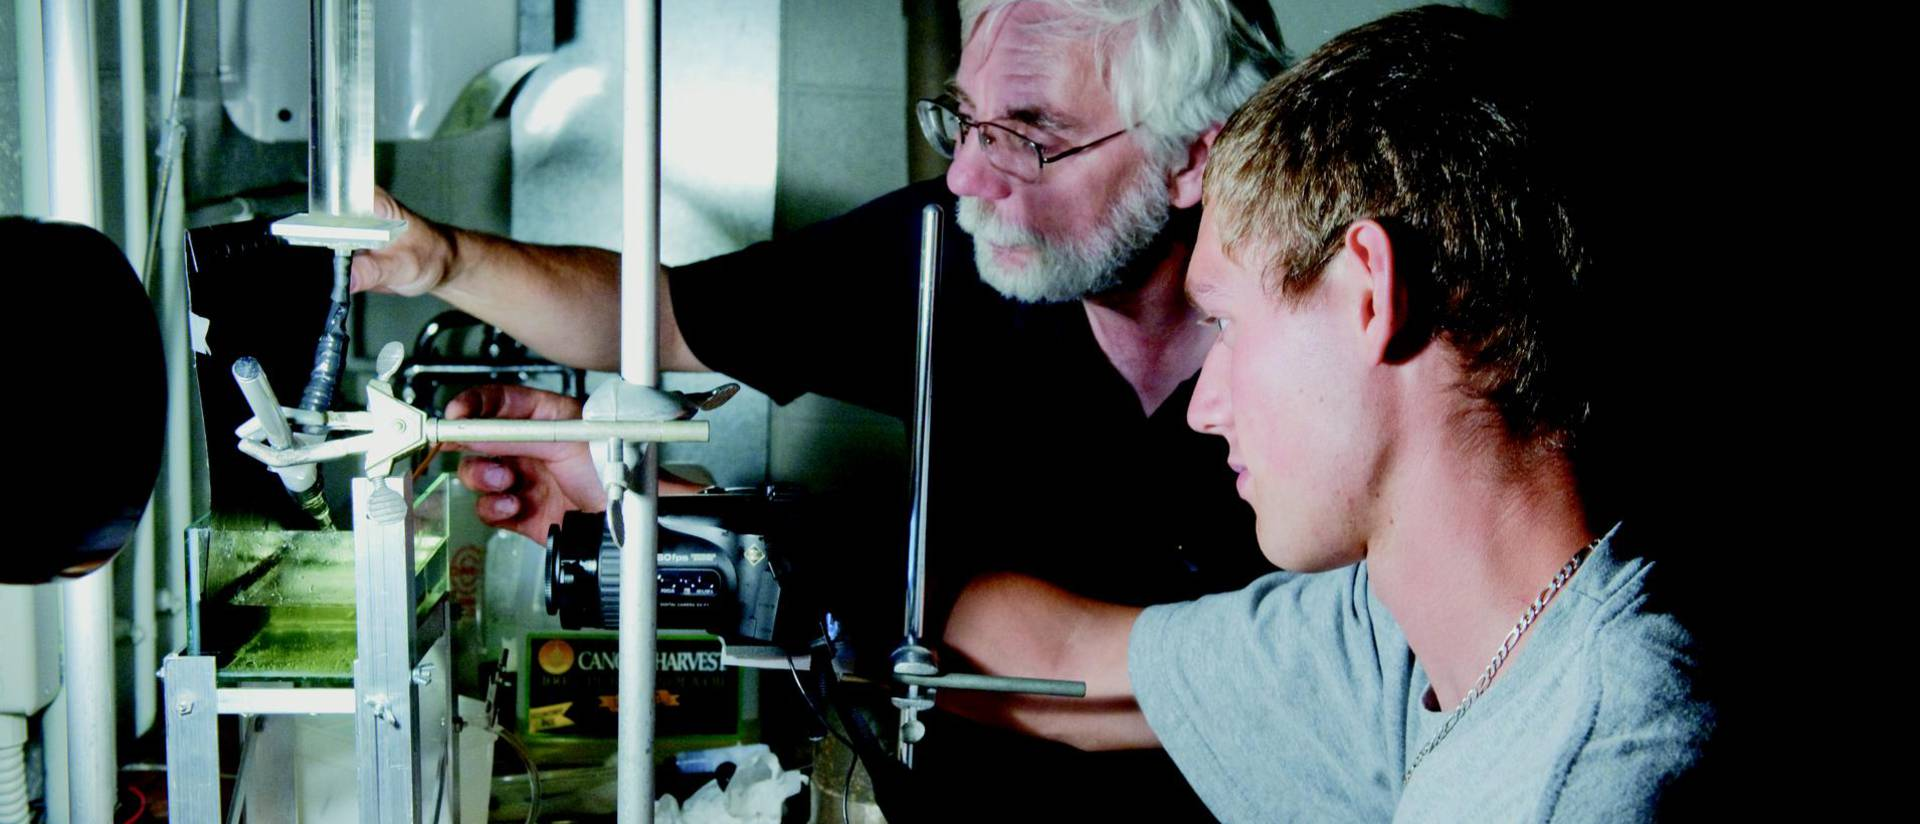 Science, business programs ranked among the top